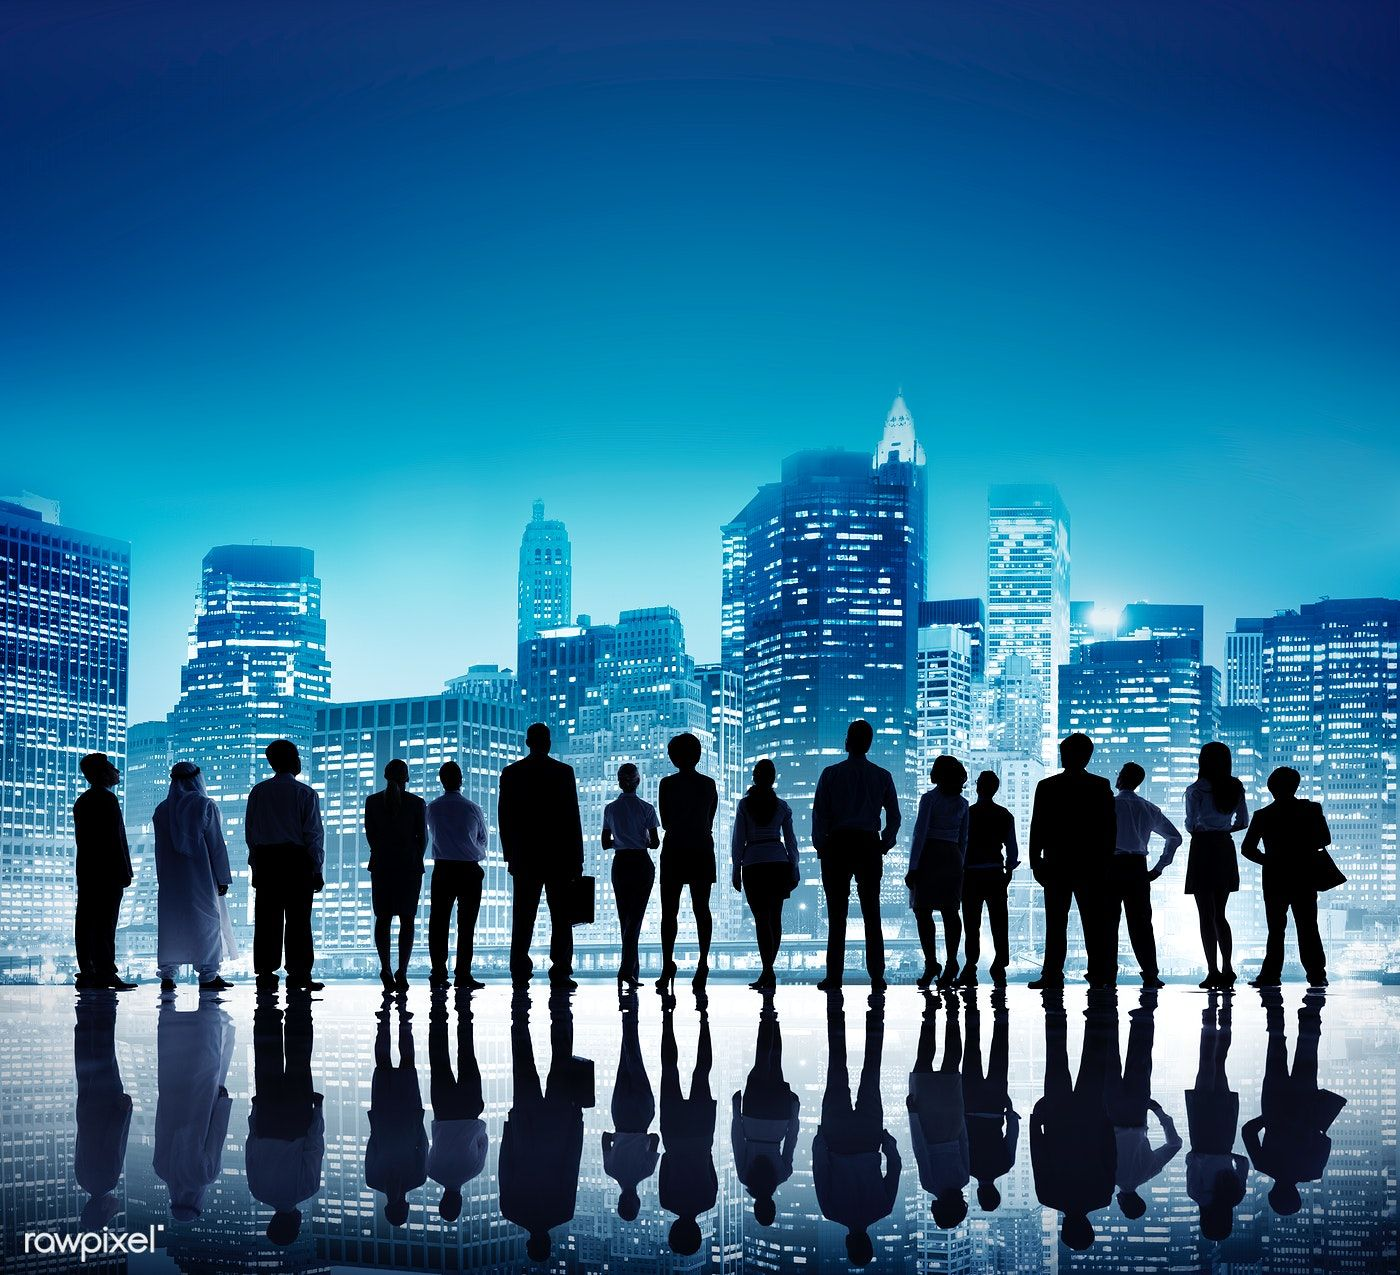 Download Premium Psd Of Business People Standing Silhouette On